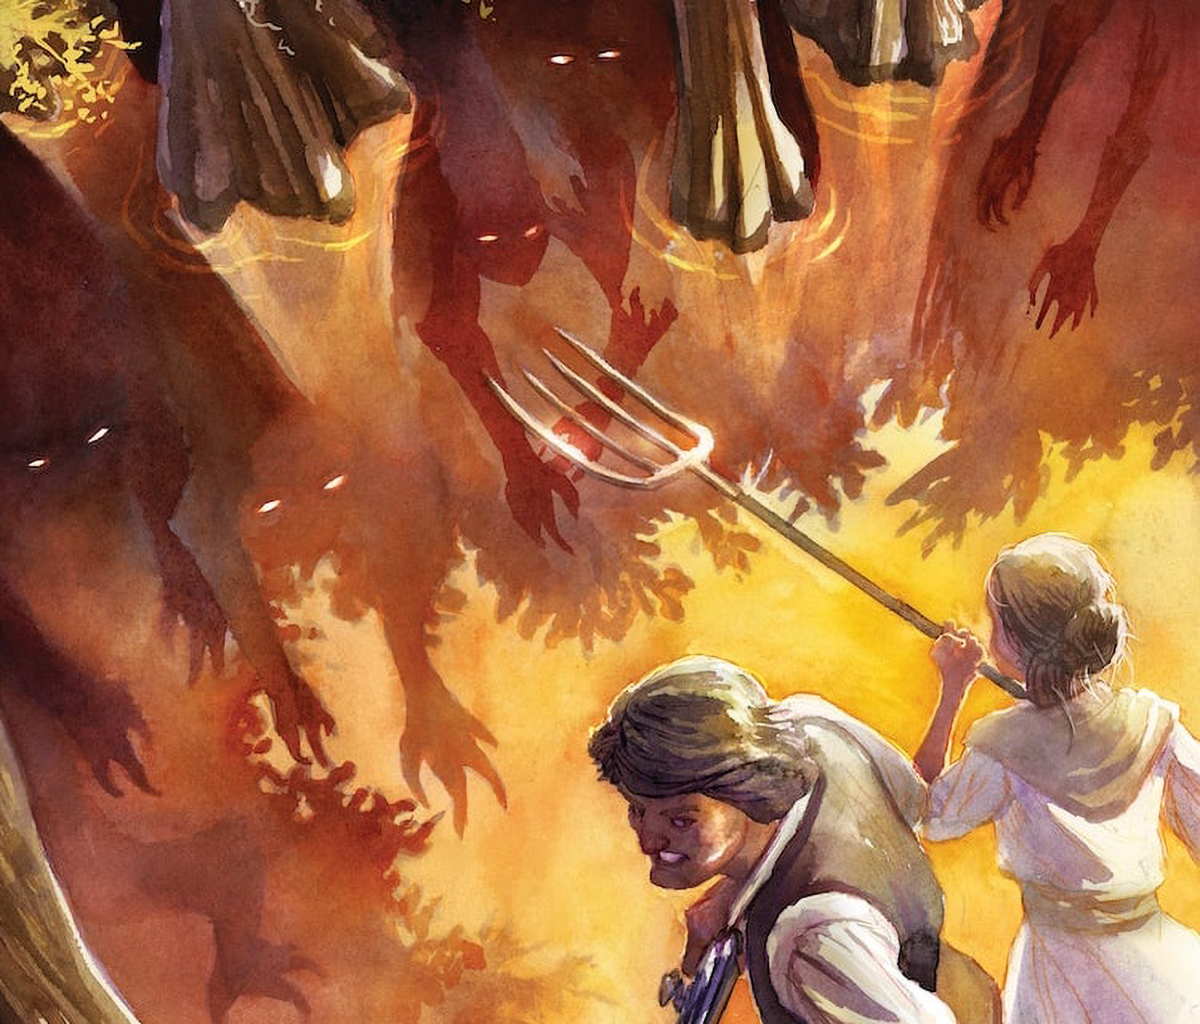 Heavy Metal announces horror one-shot 'Intrusion' for September 22nd